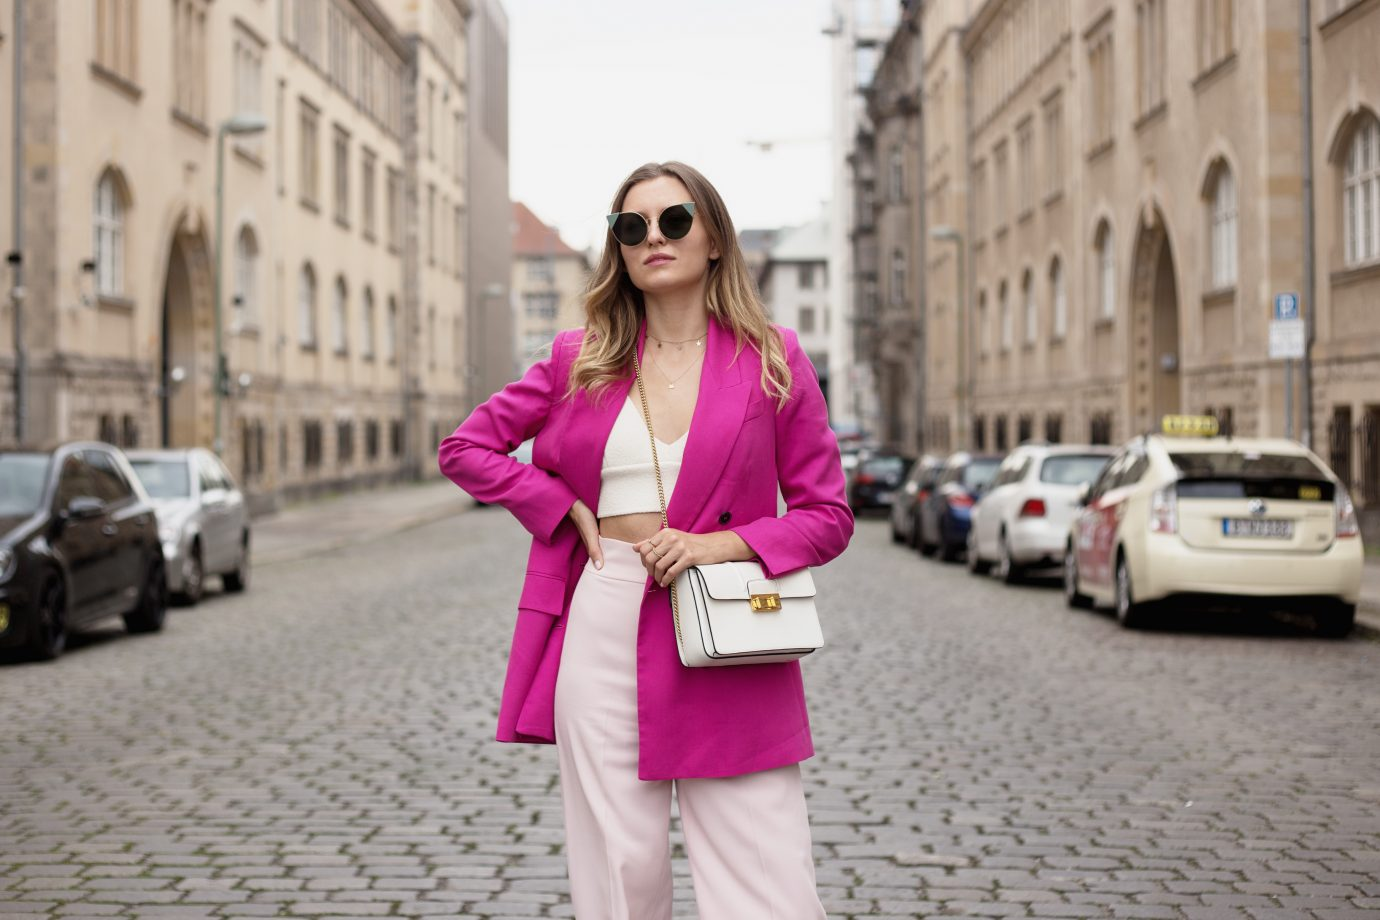 LADY PINK PANTHER IN BERLIN